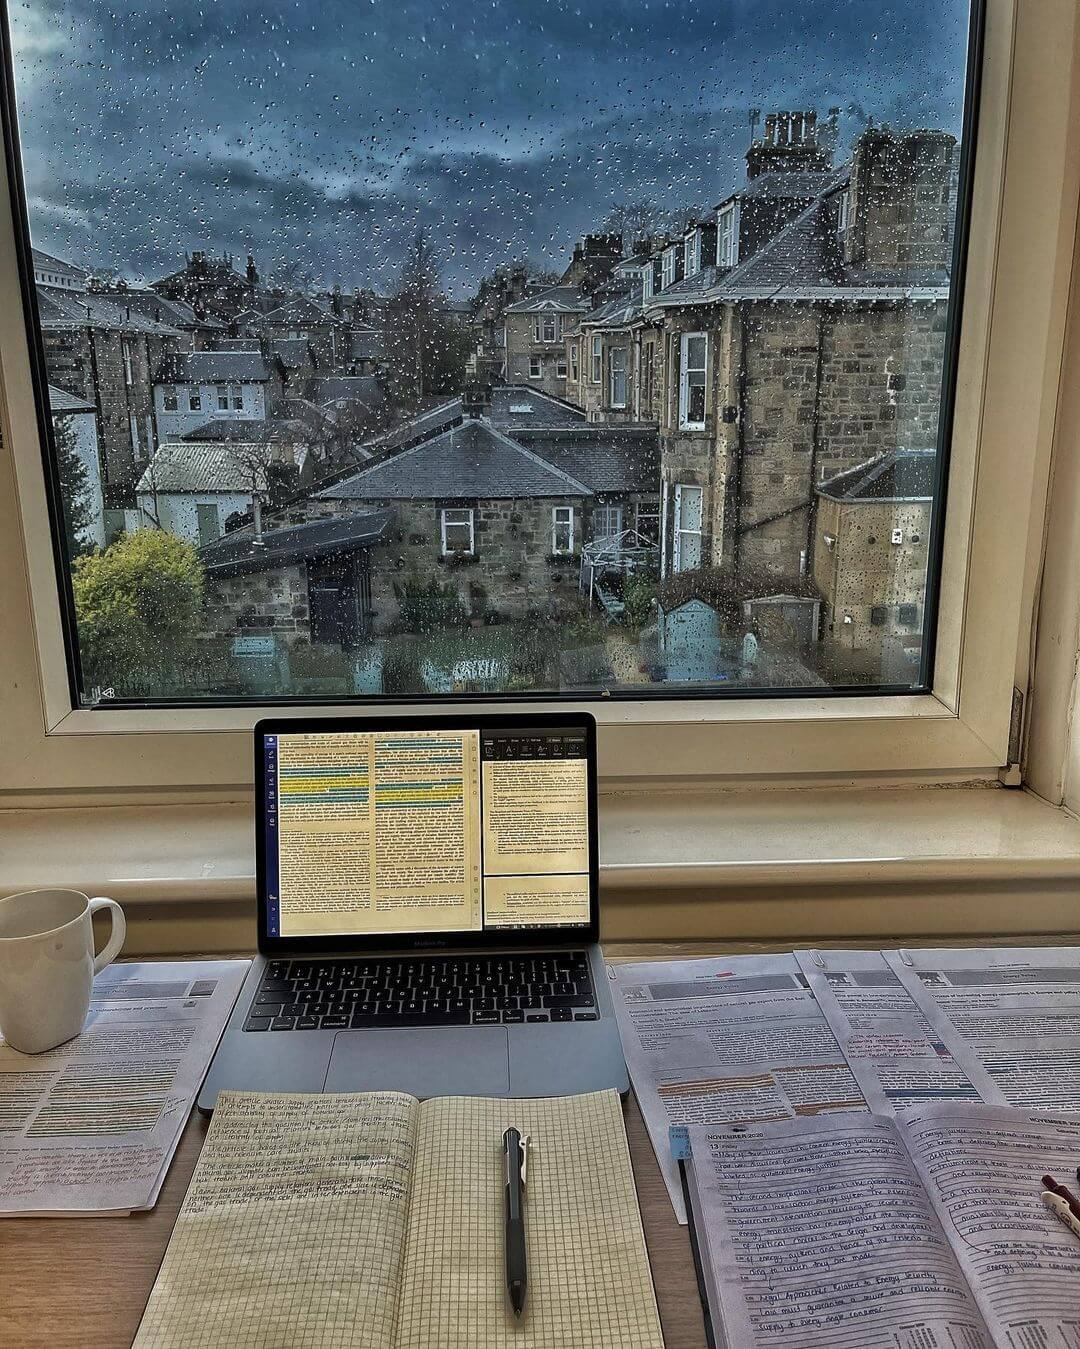 Merve loves studying when it's raining. In Scotland, they would call it 'dreich': grey, damp, and overcast weather